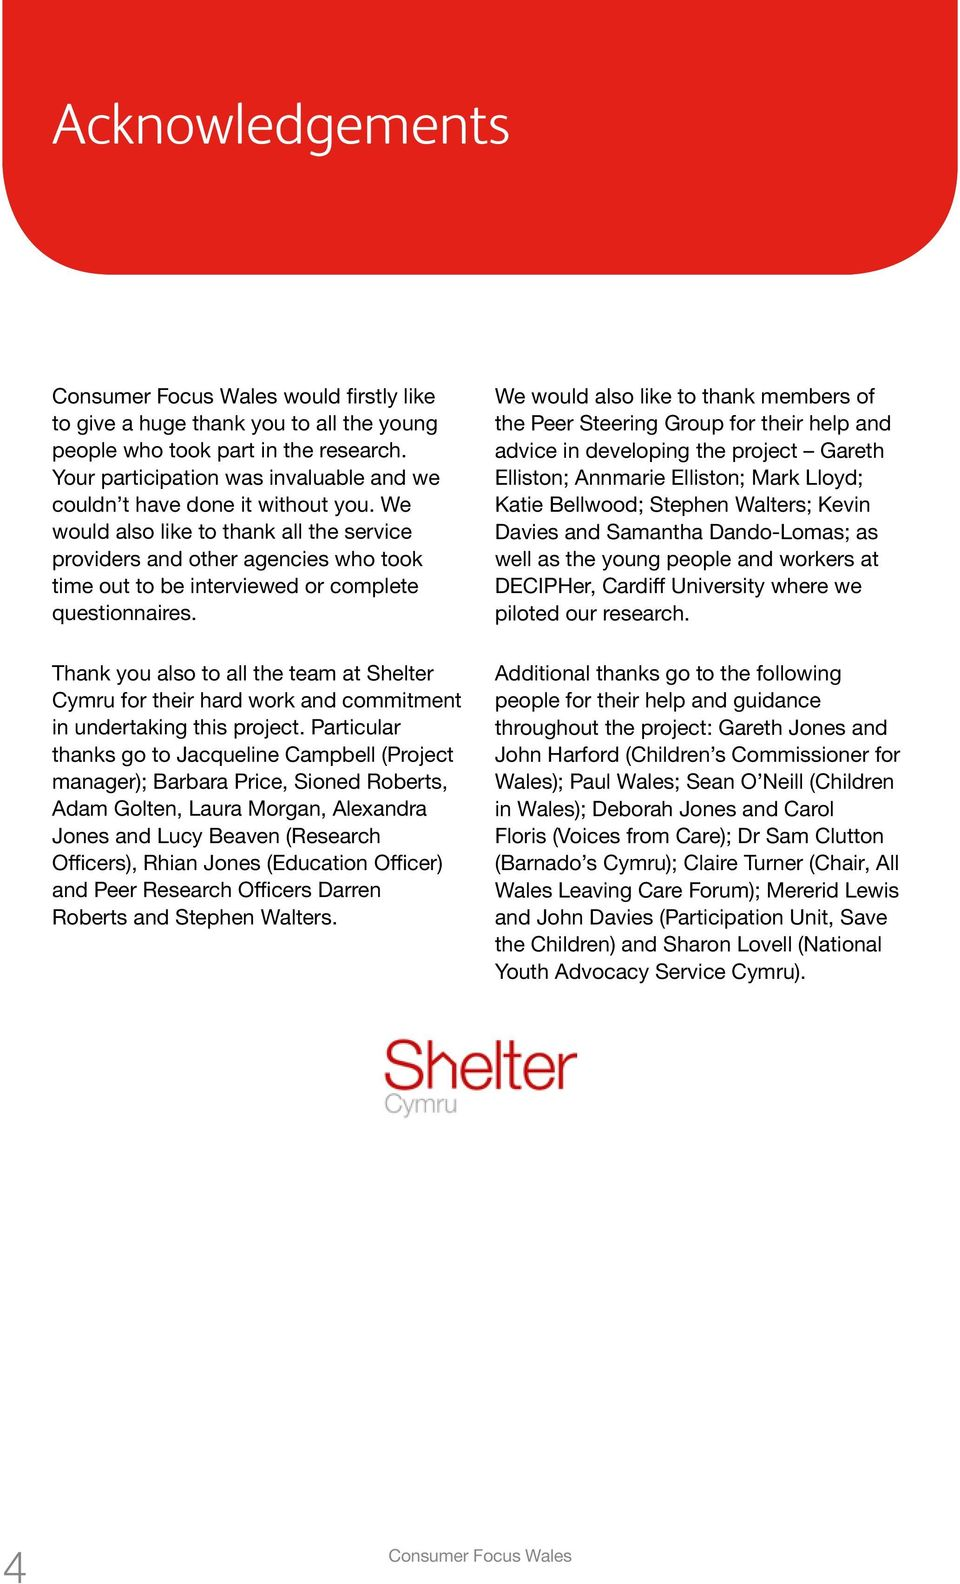 Thank you also to all the team at Shelter Cymru for their hard work and commitment in undertaking this project.